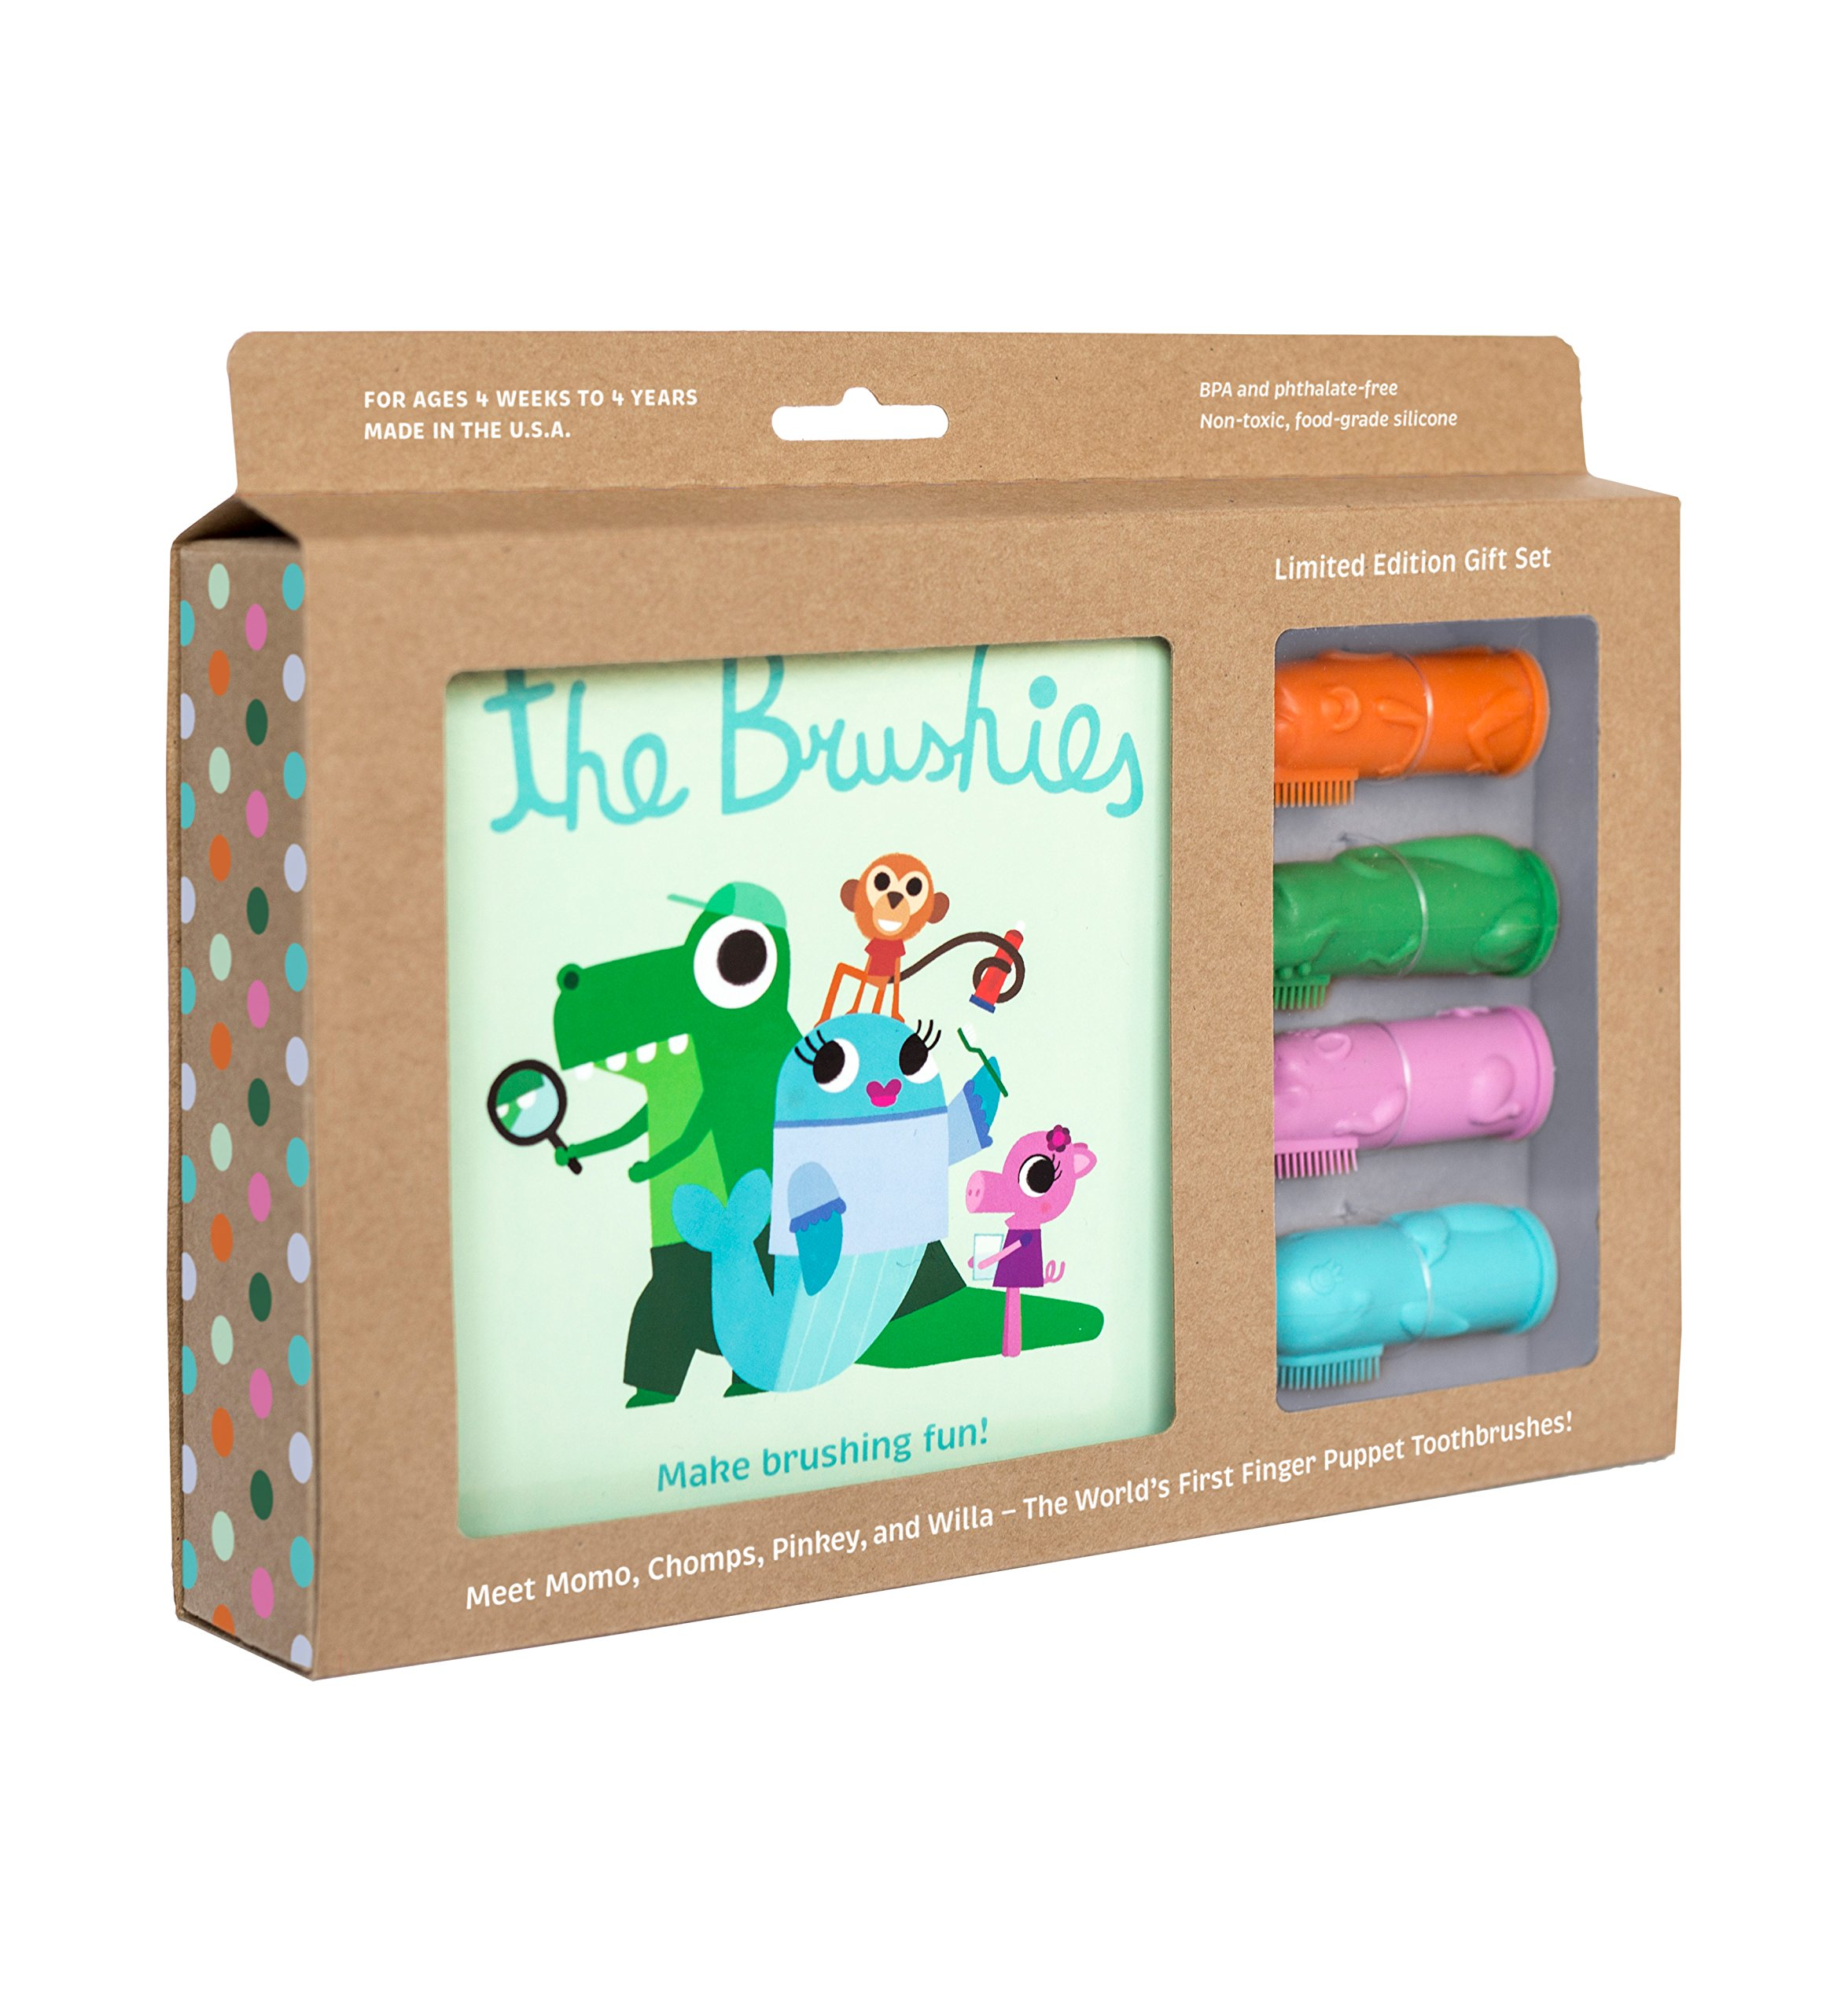 The Brushies - baby and toddler toothbrush and storybook gift set! by The Brushies